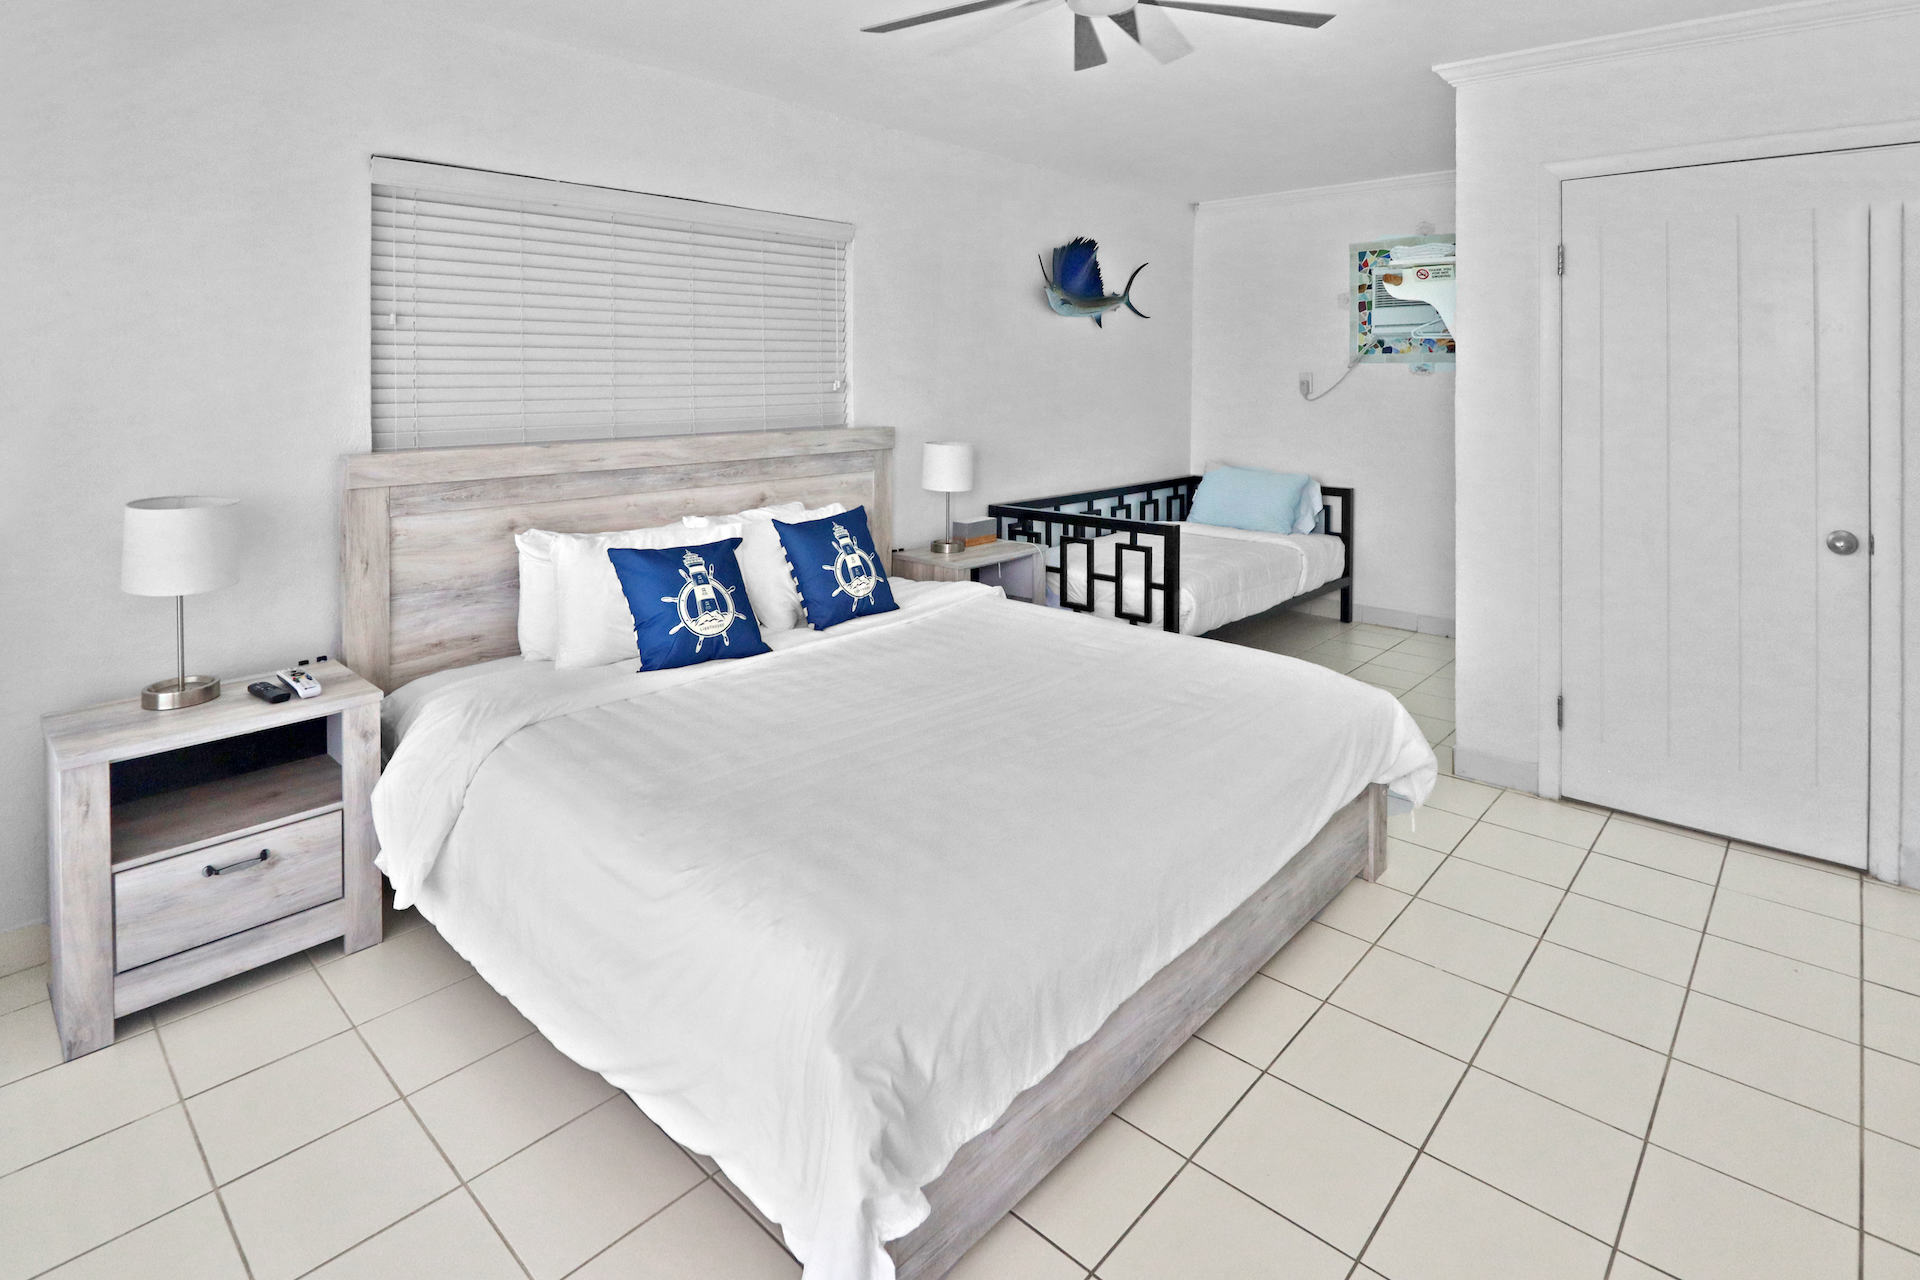 business-investment-alice-town-bimini-real-estate-14